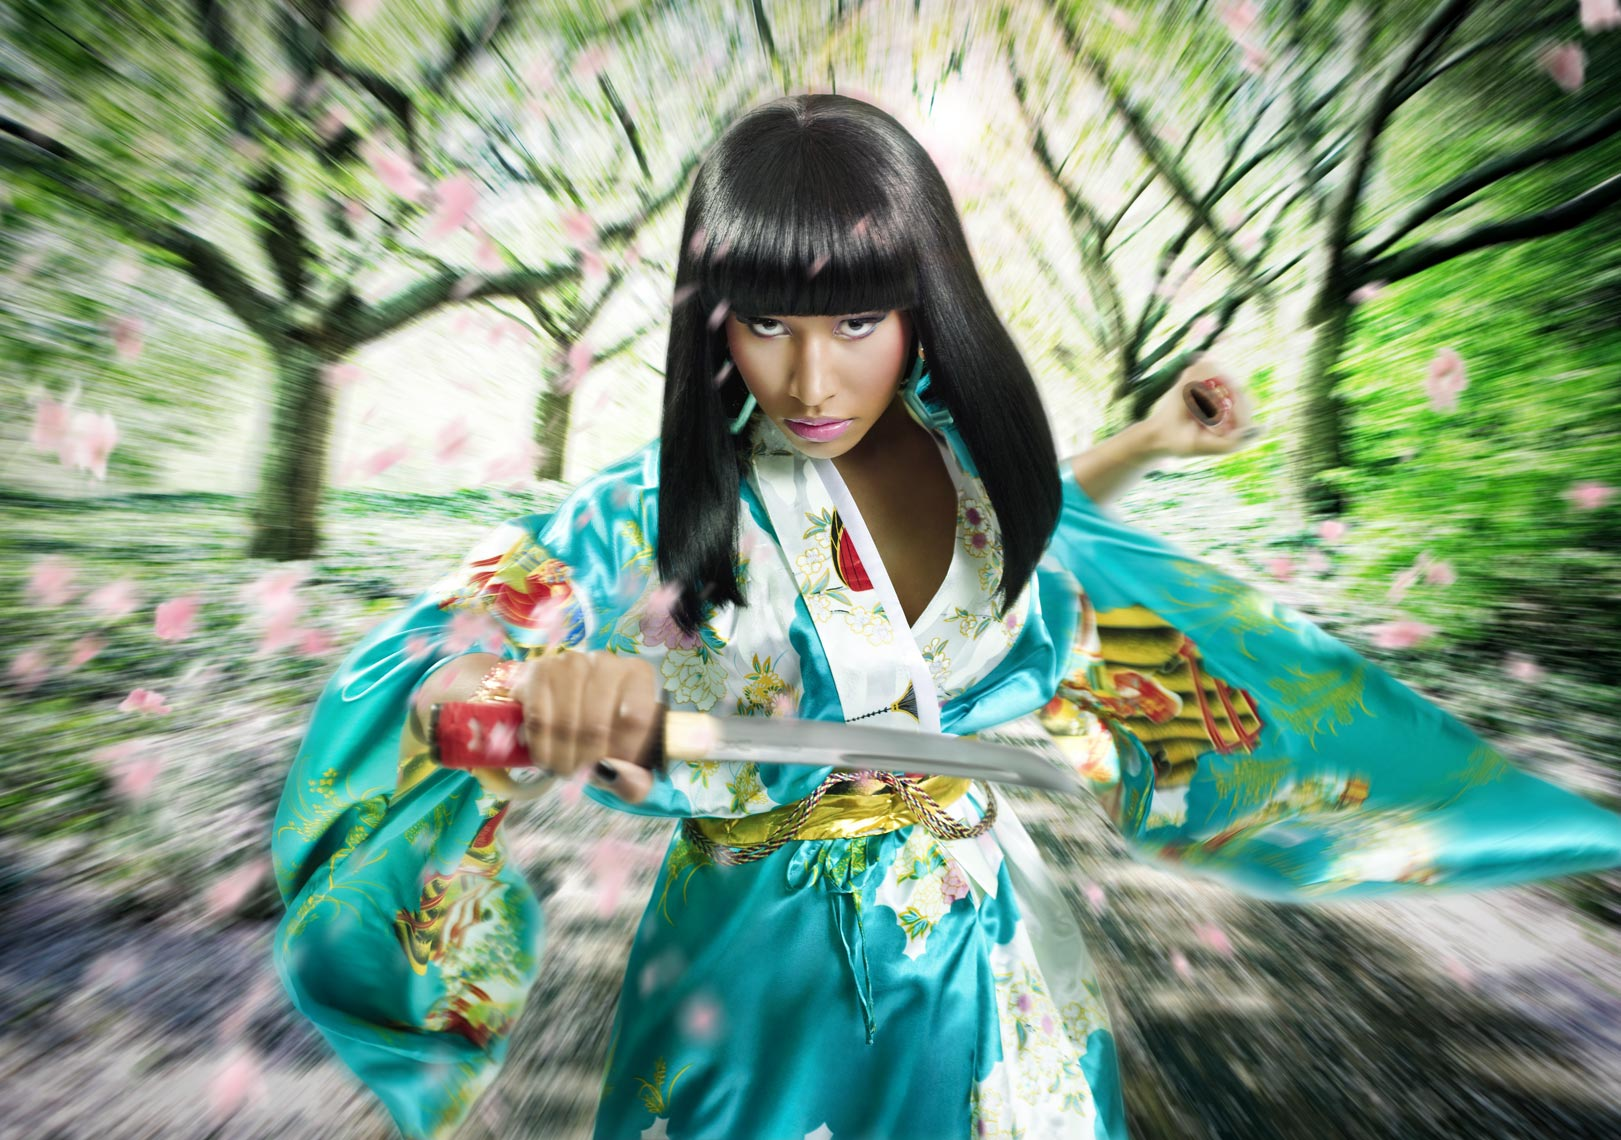 Nicki-Minaj-Press-0883RGB.jpg